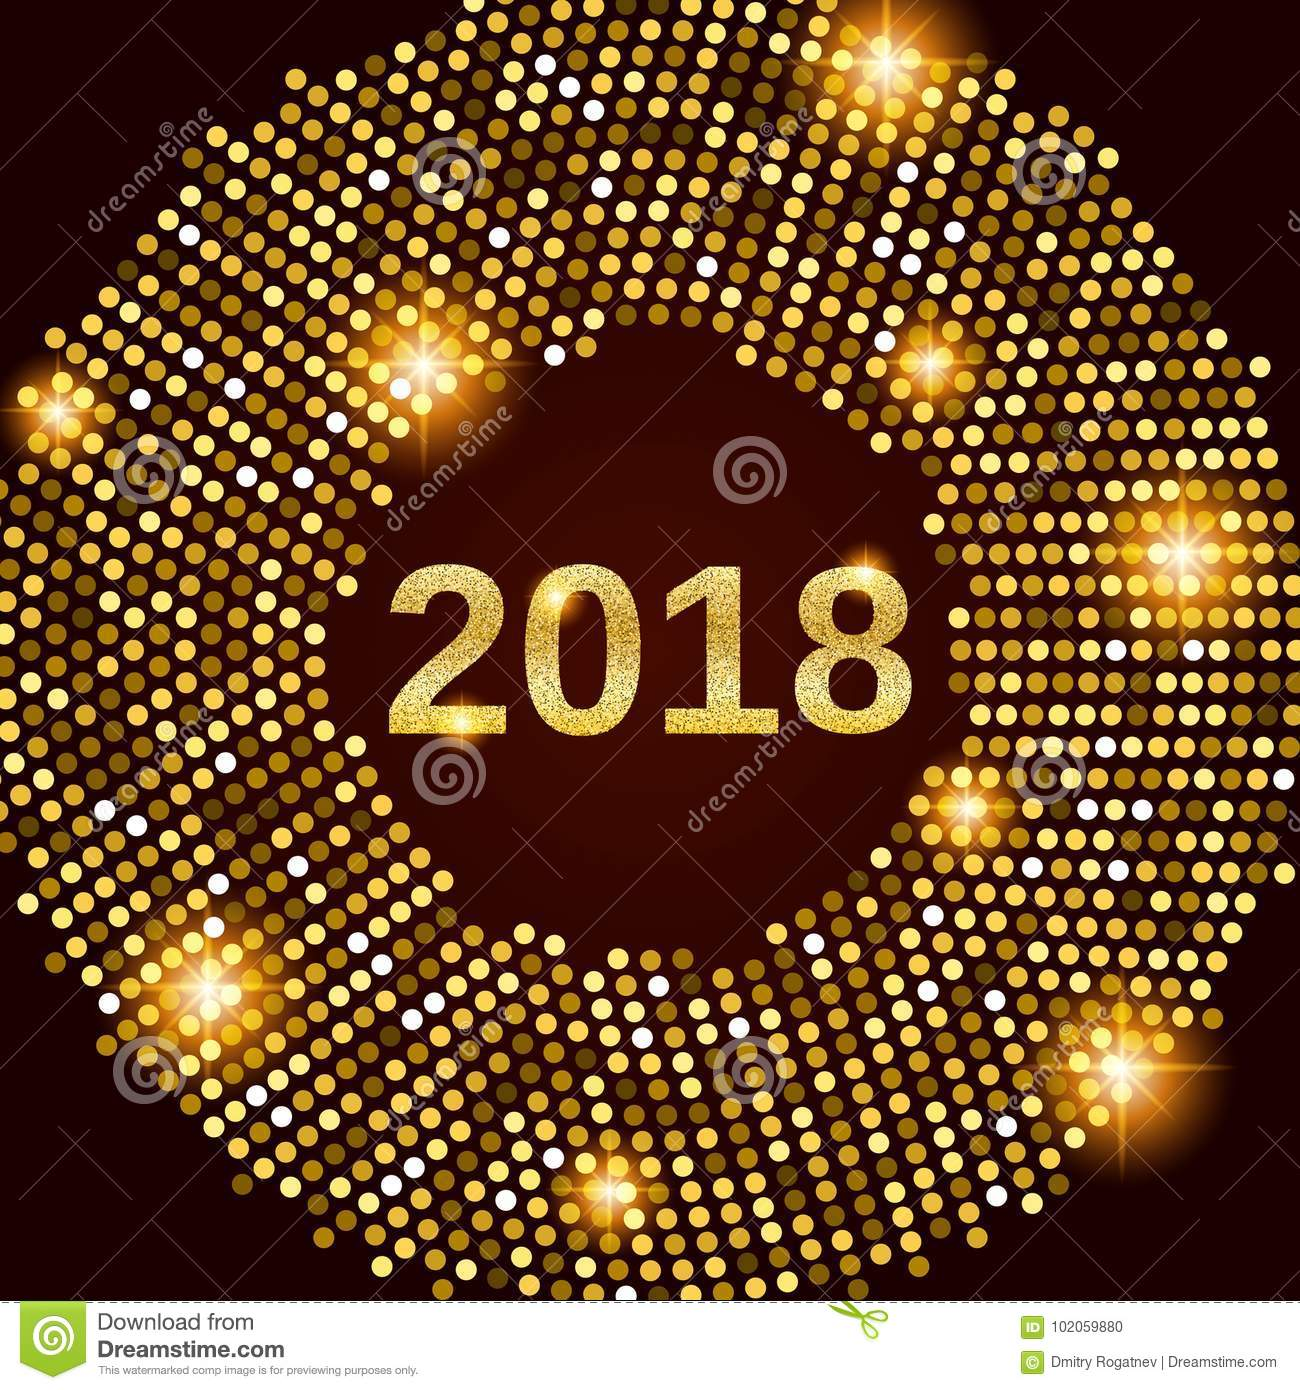 new year 2018 celebration background happy new year gold glitter type on black background with gold disco lights frame greeting card template